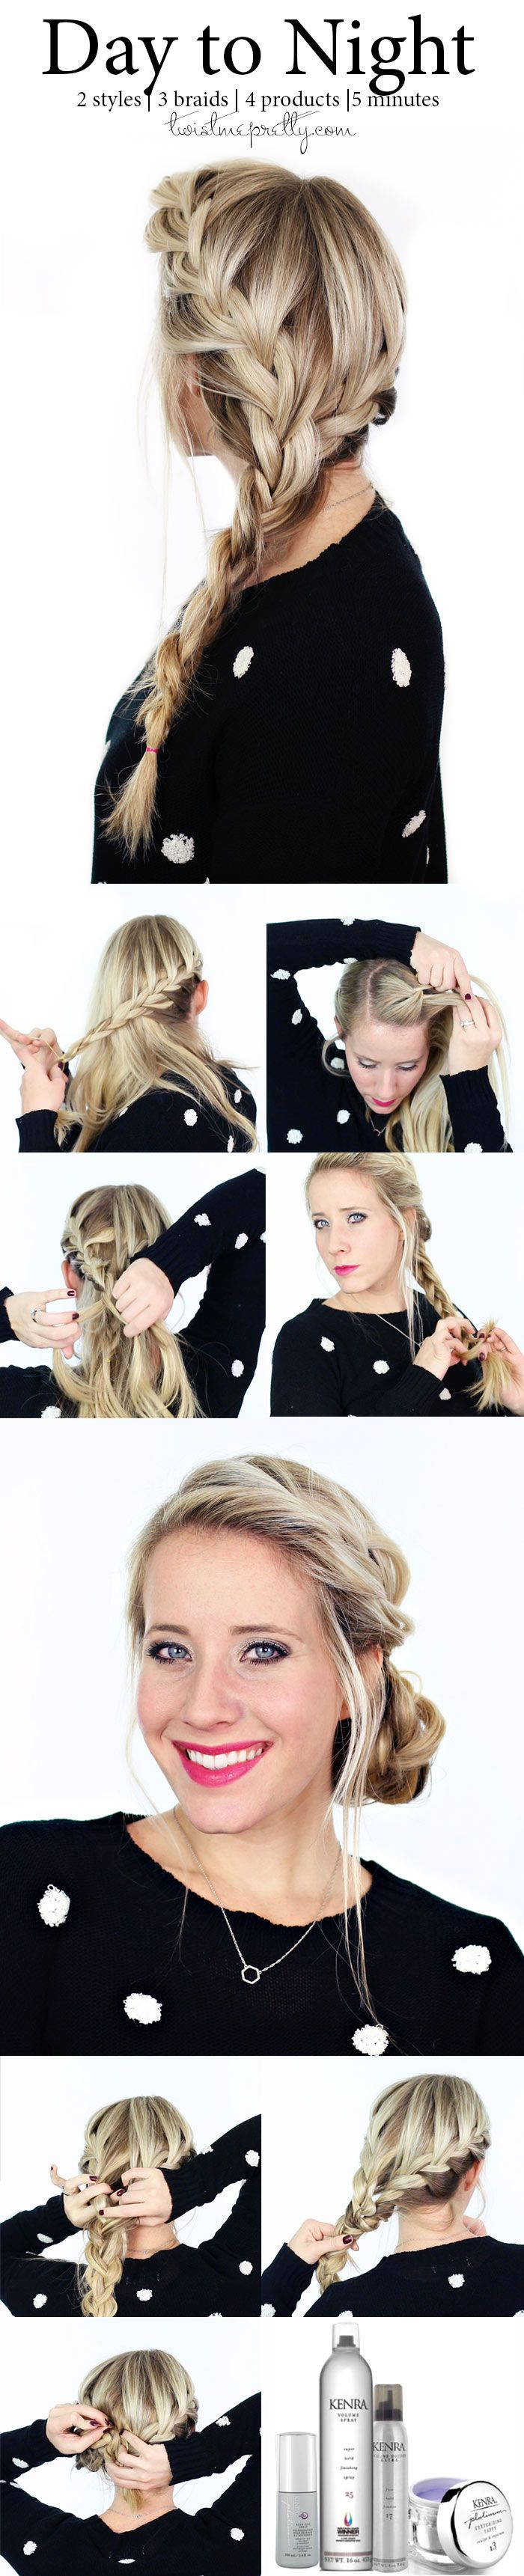 Having a few transitional hairstyles are a must this holiday season!!  From a busy day braid to an elegant updo, come learn these gorgeous styles at twistmepretty.com